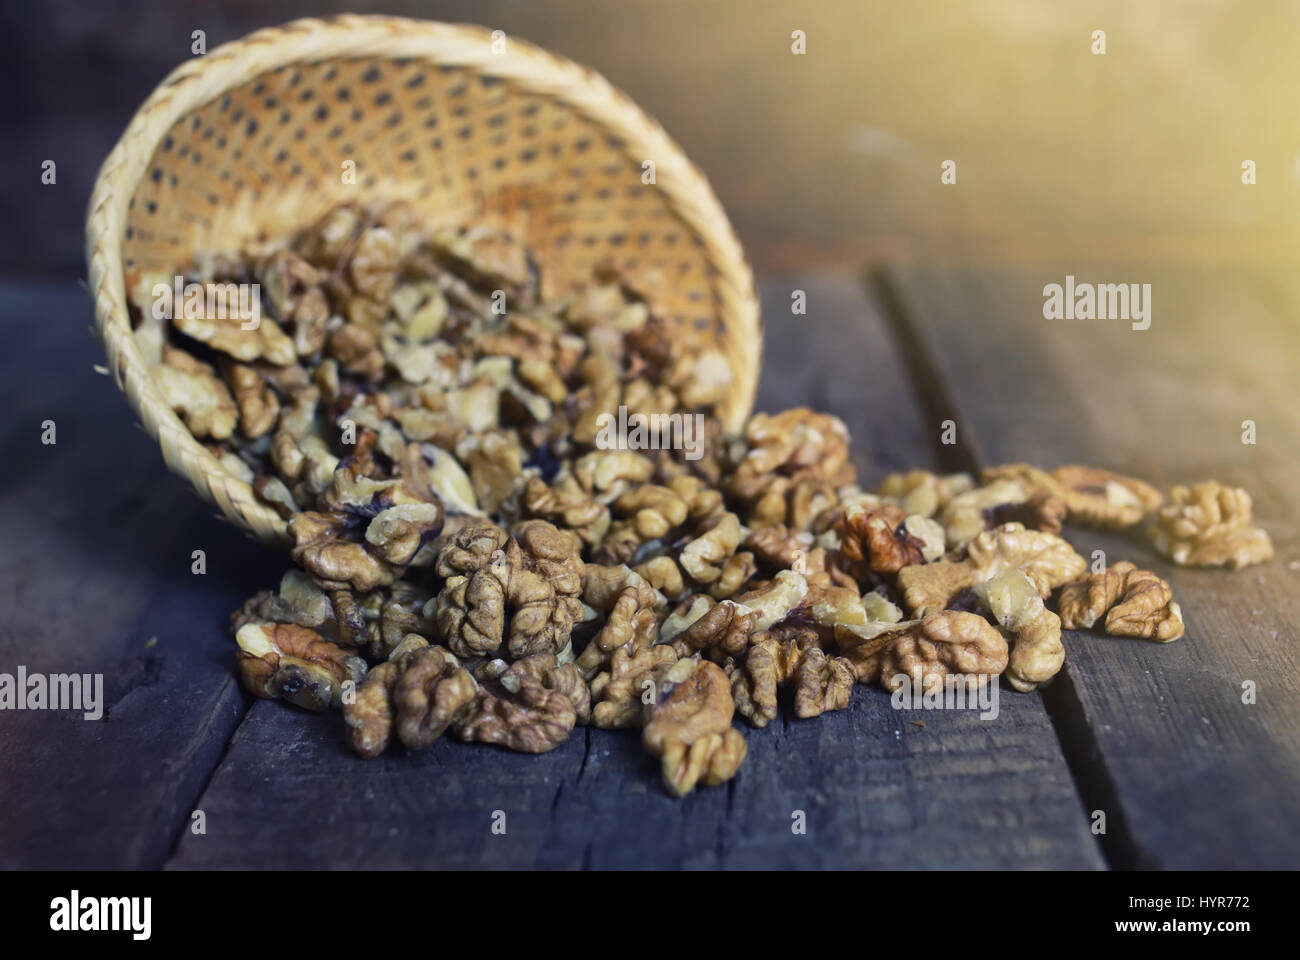 walnut on wooden background - Stock Image